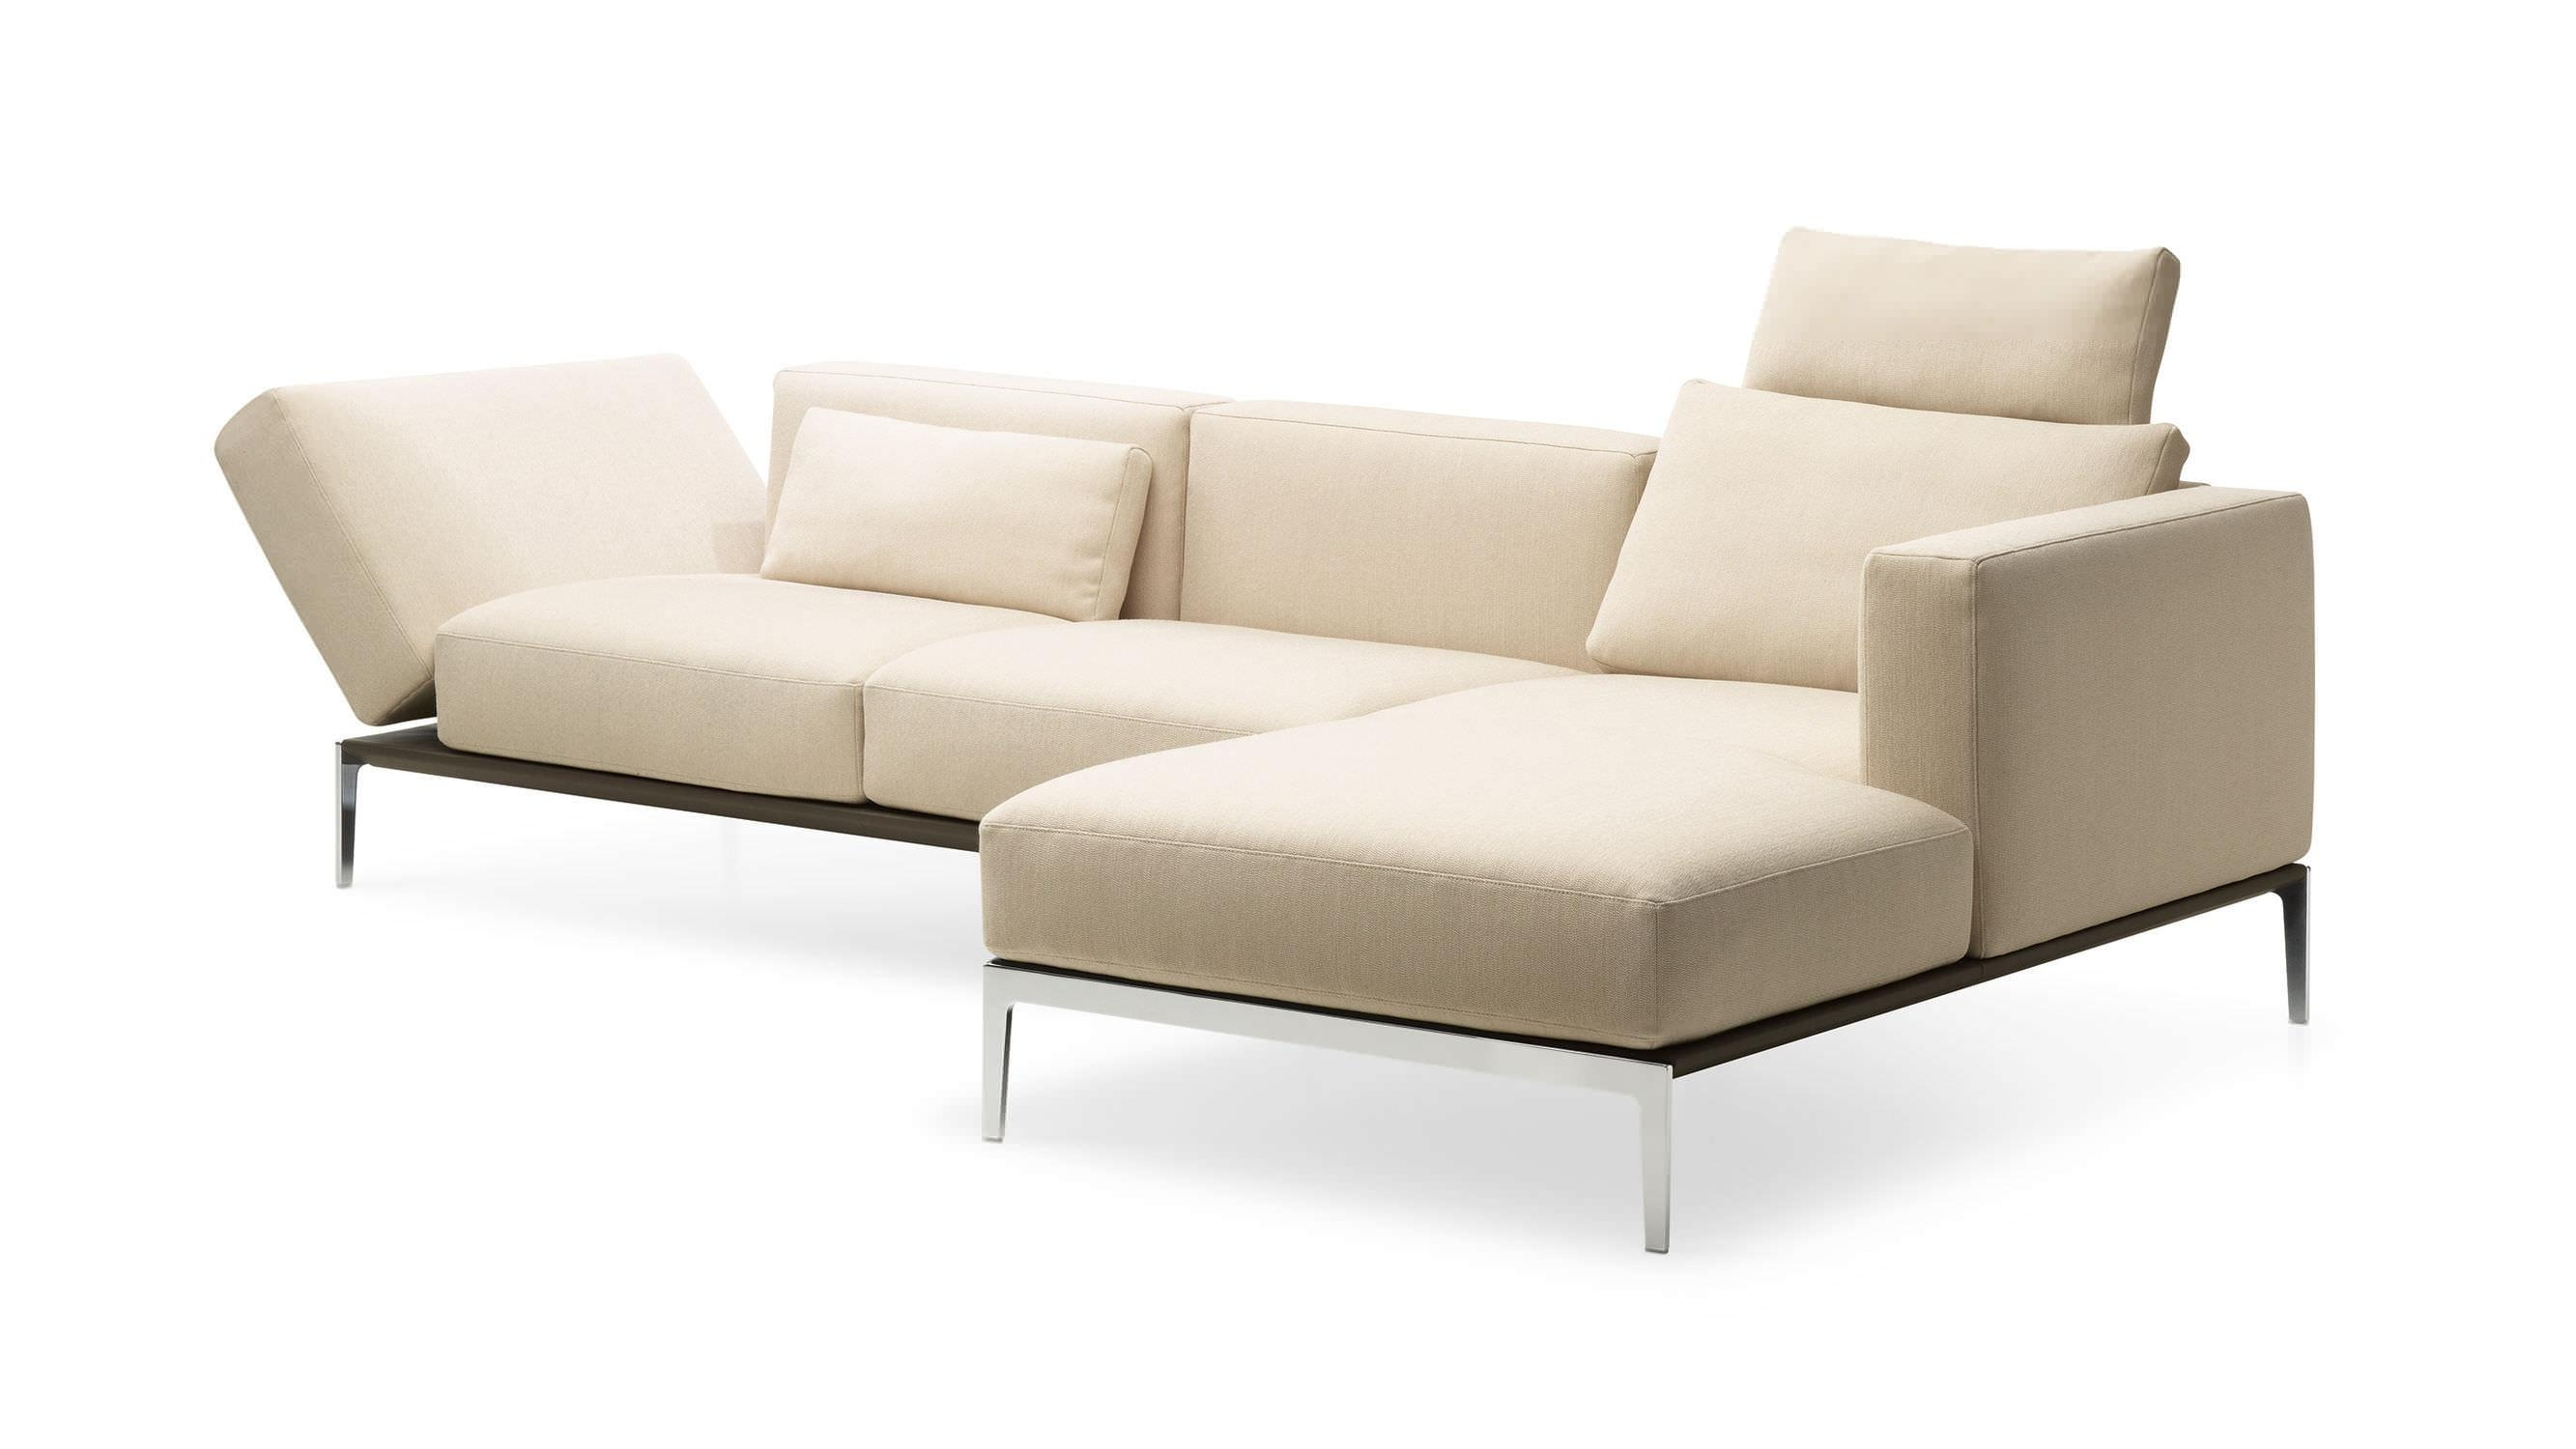 Corner Sofa / Modular / Contemporary / Leather – 1343 Piu For Modular Corner Sofas (View 17 of 20)